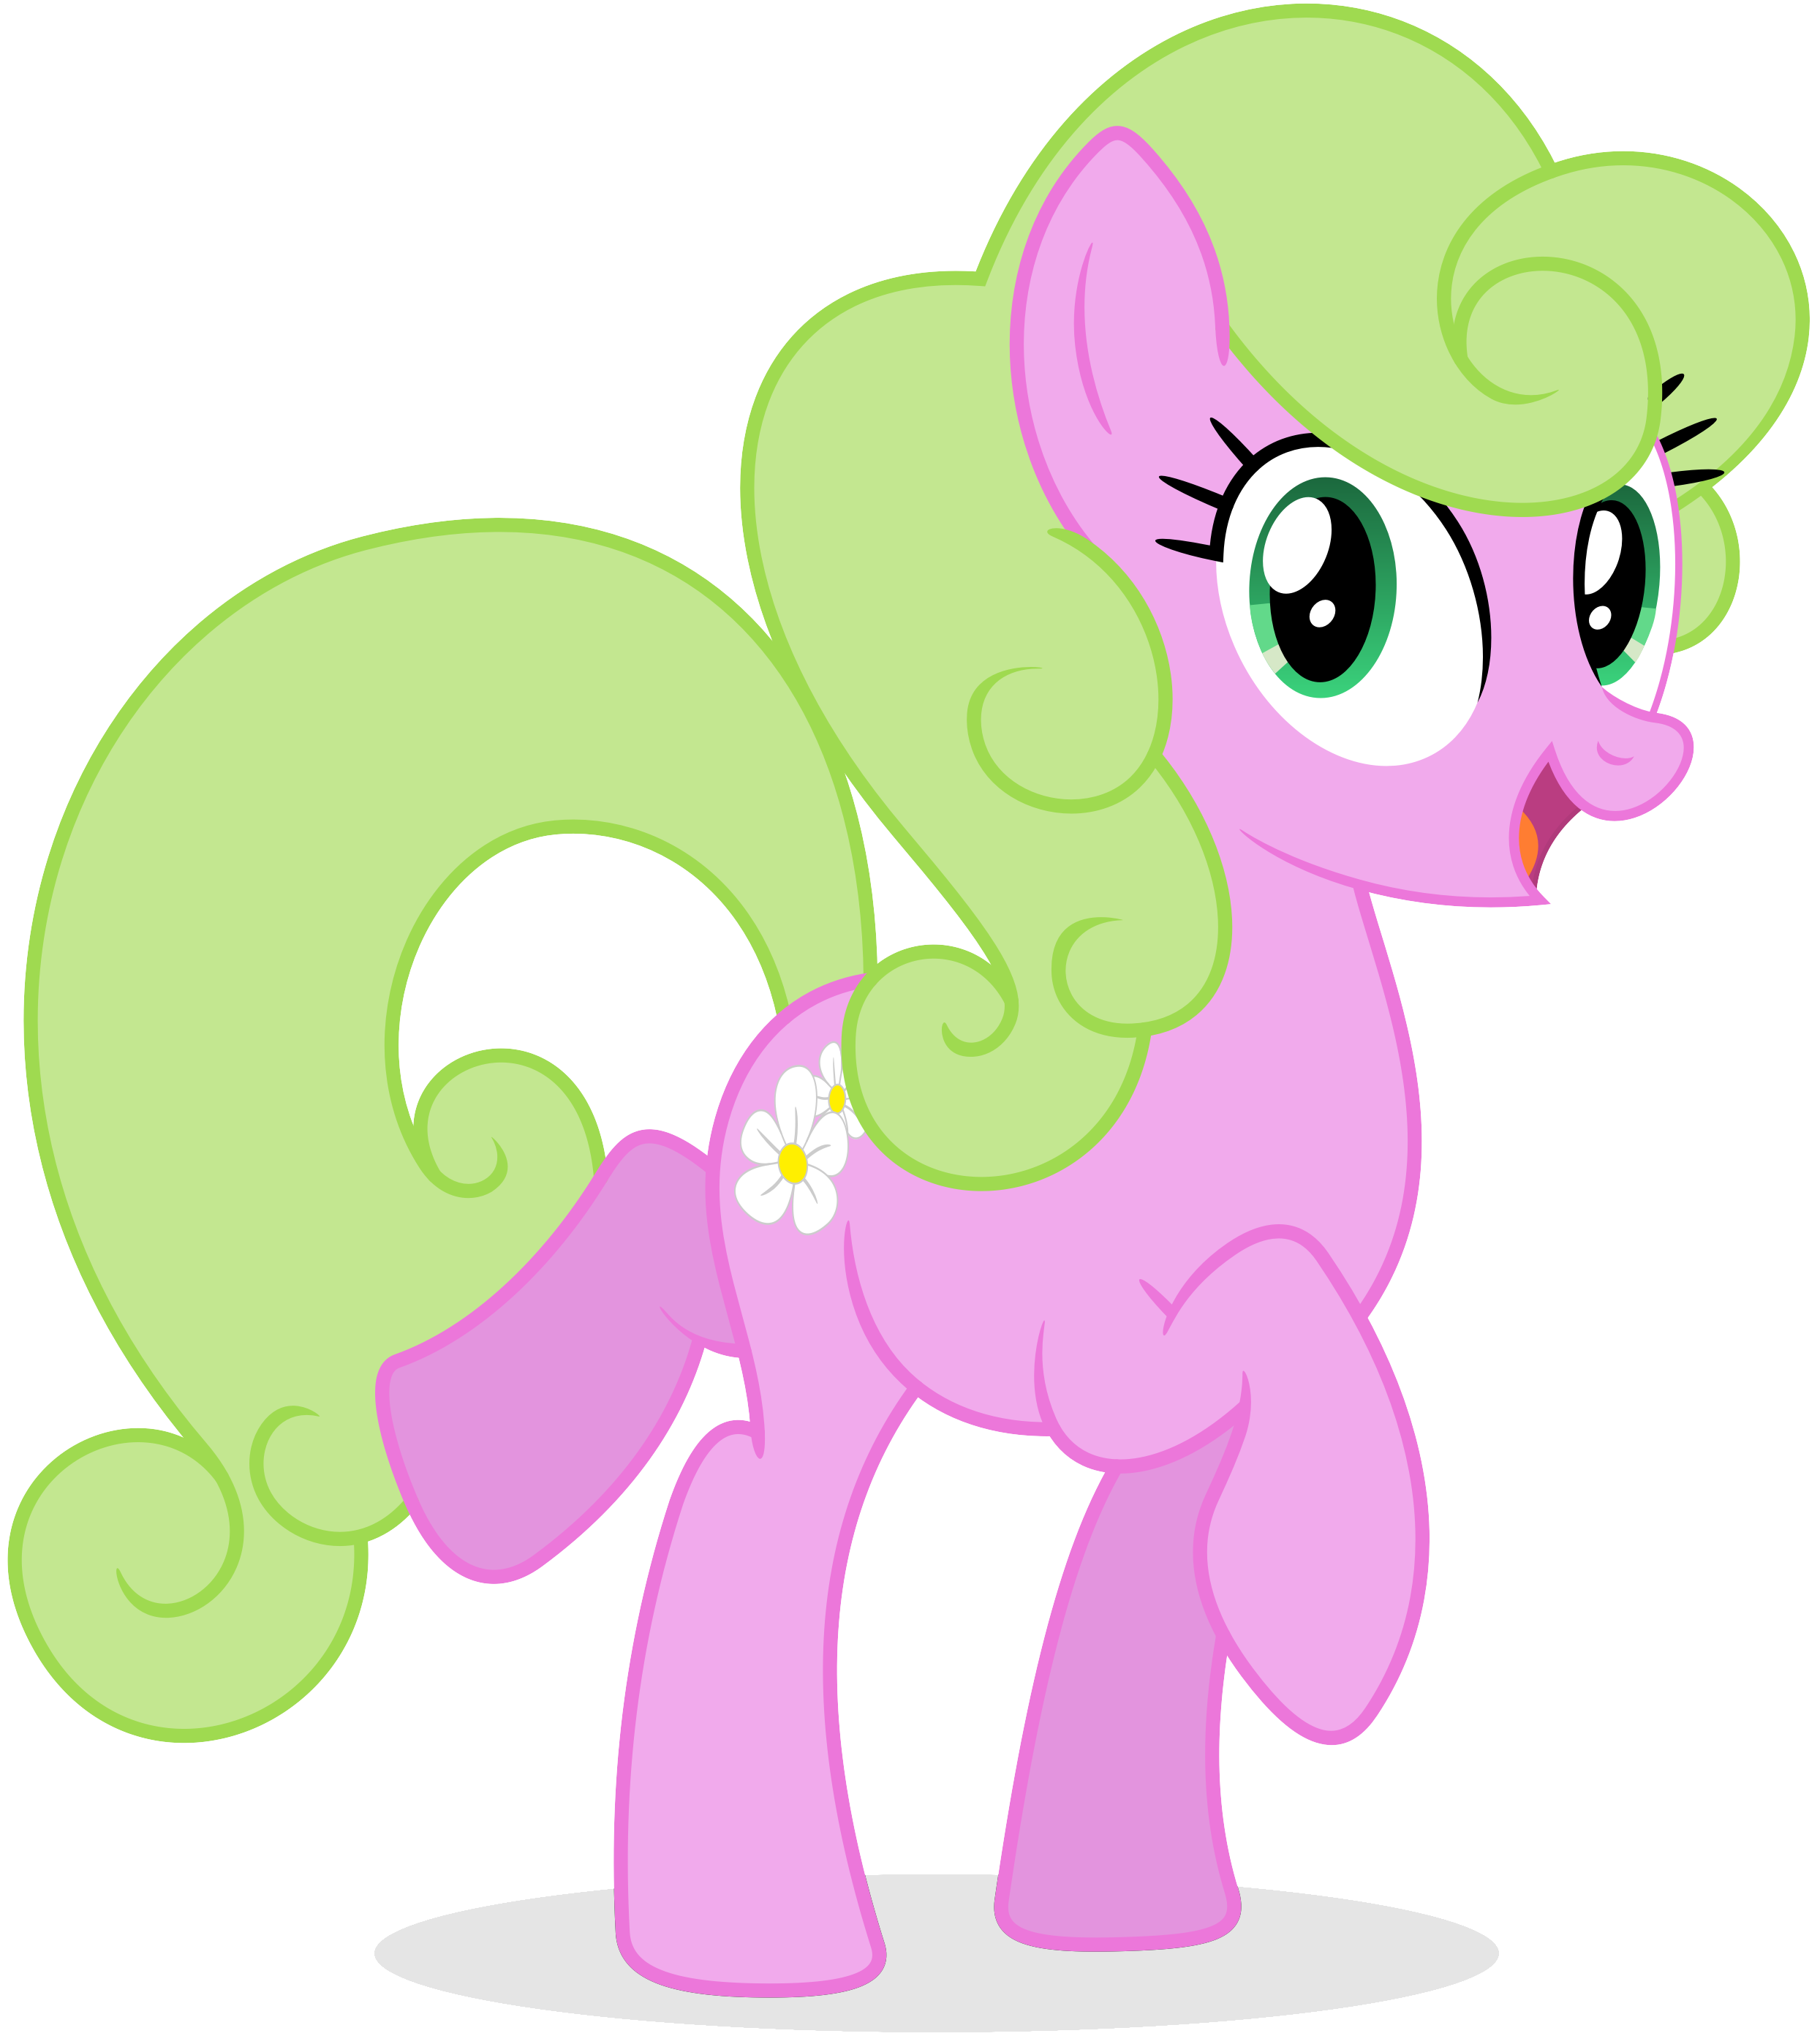 Daisy as seen on an album cover by bluemeganium on DeviantArt Flower Wishes Mlp